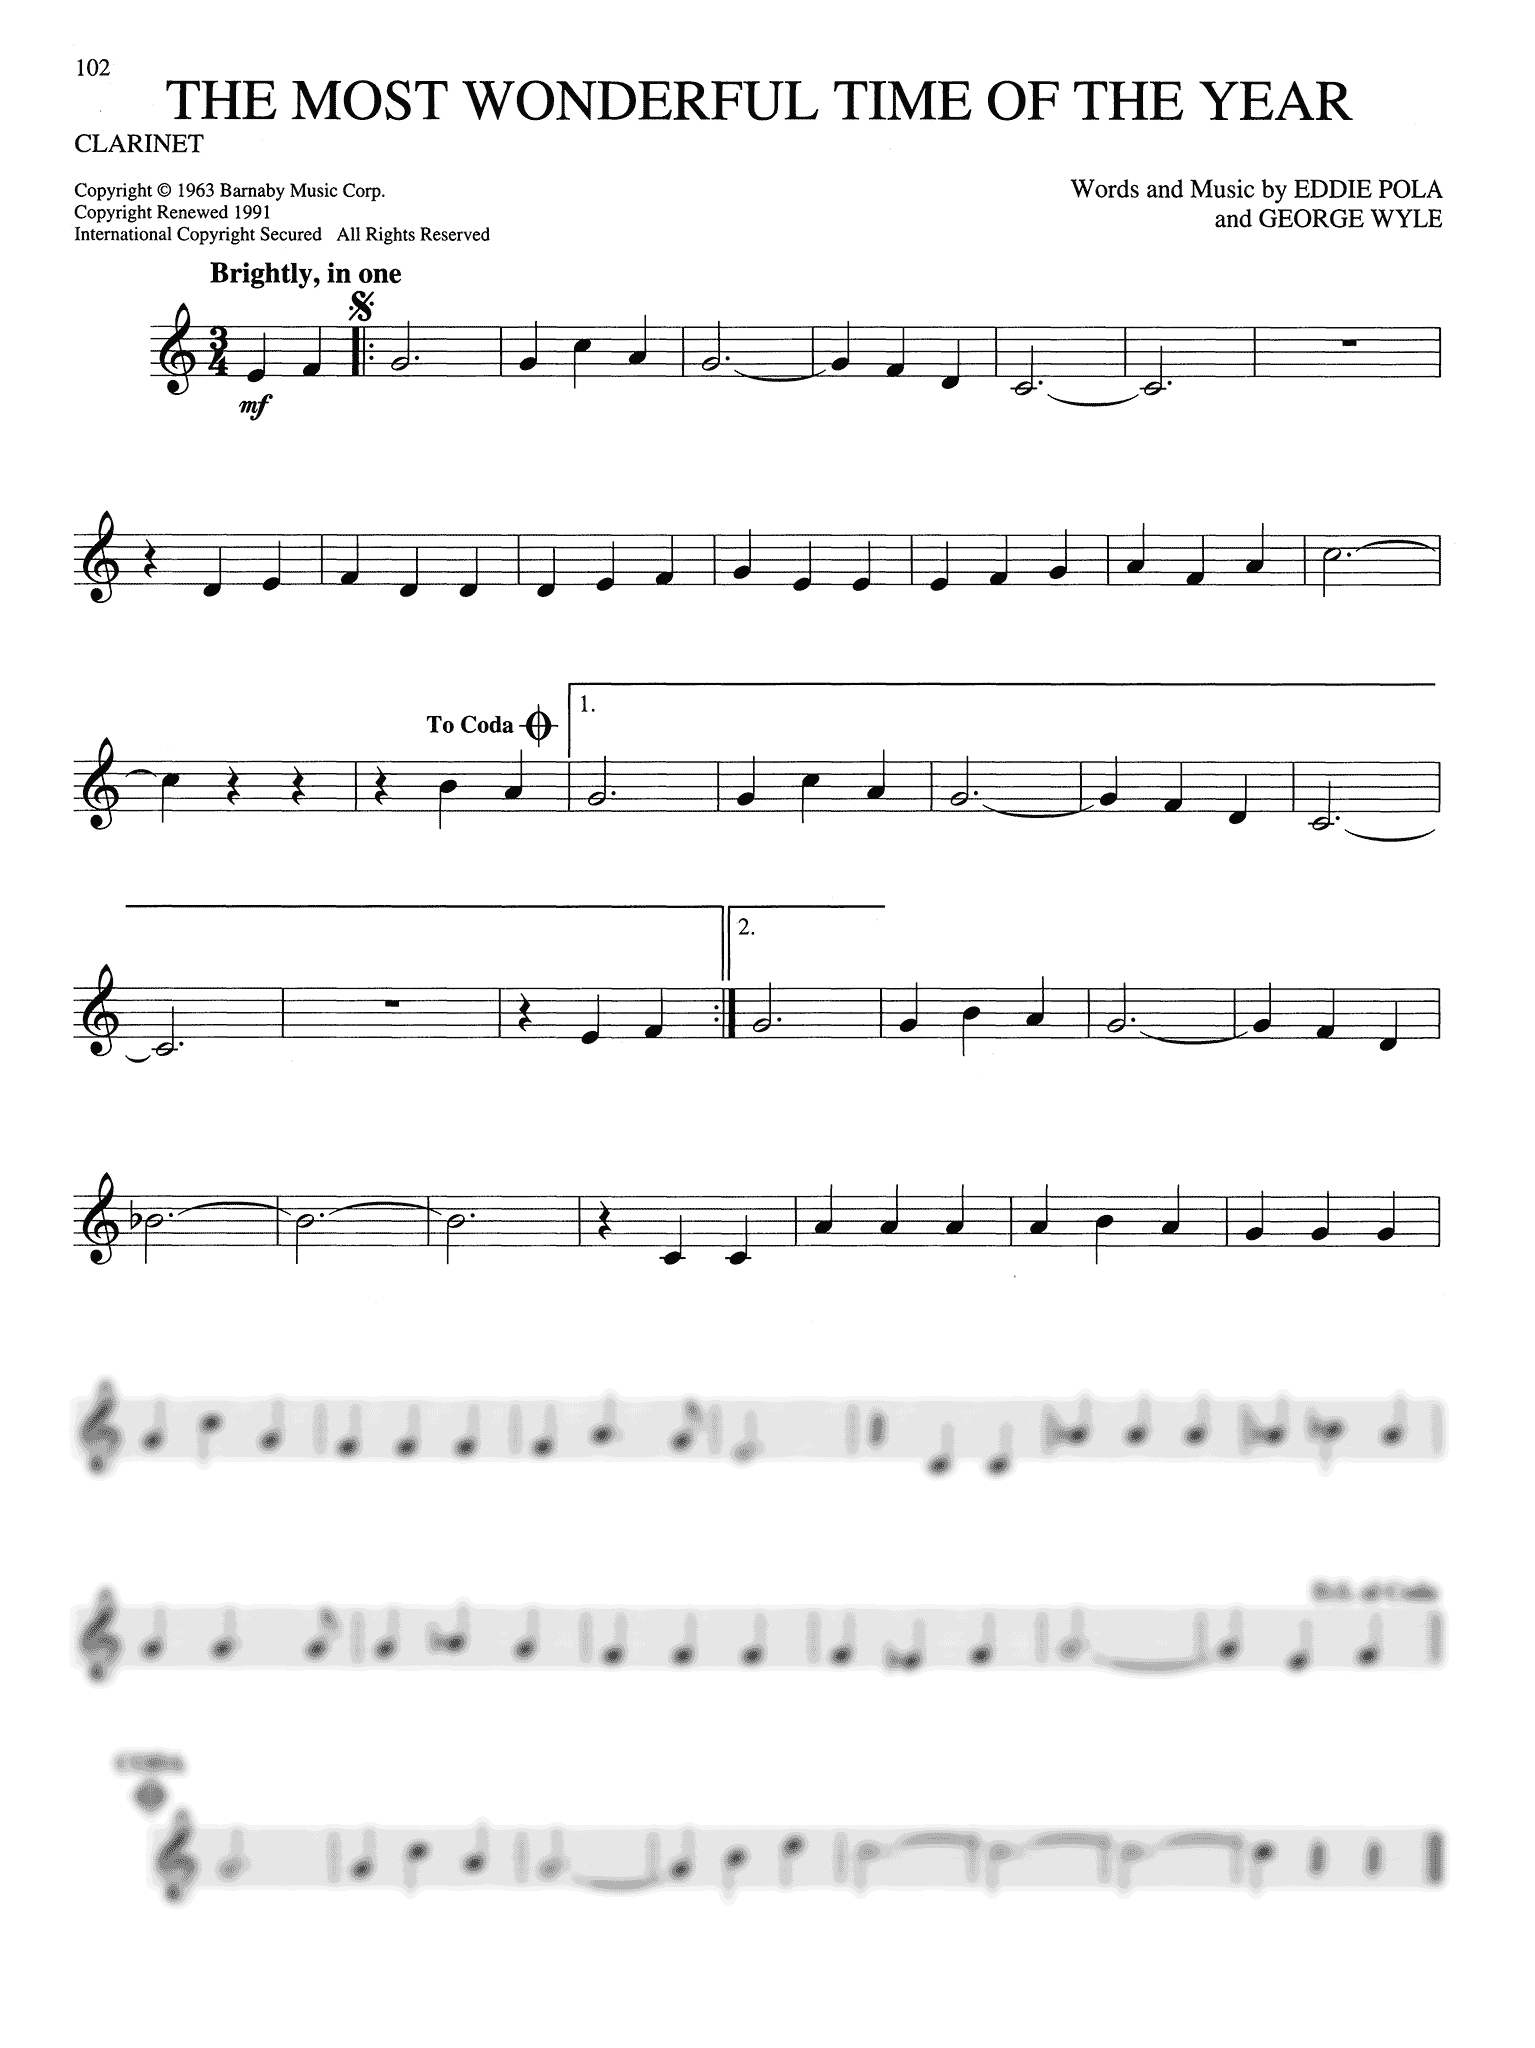 Big Book of Christmas Songs Clarinet Page 102